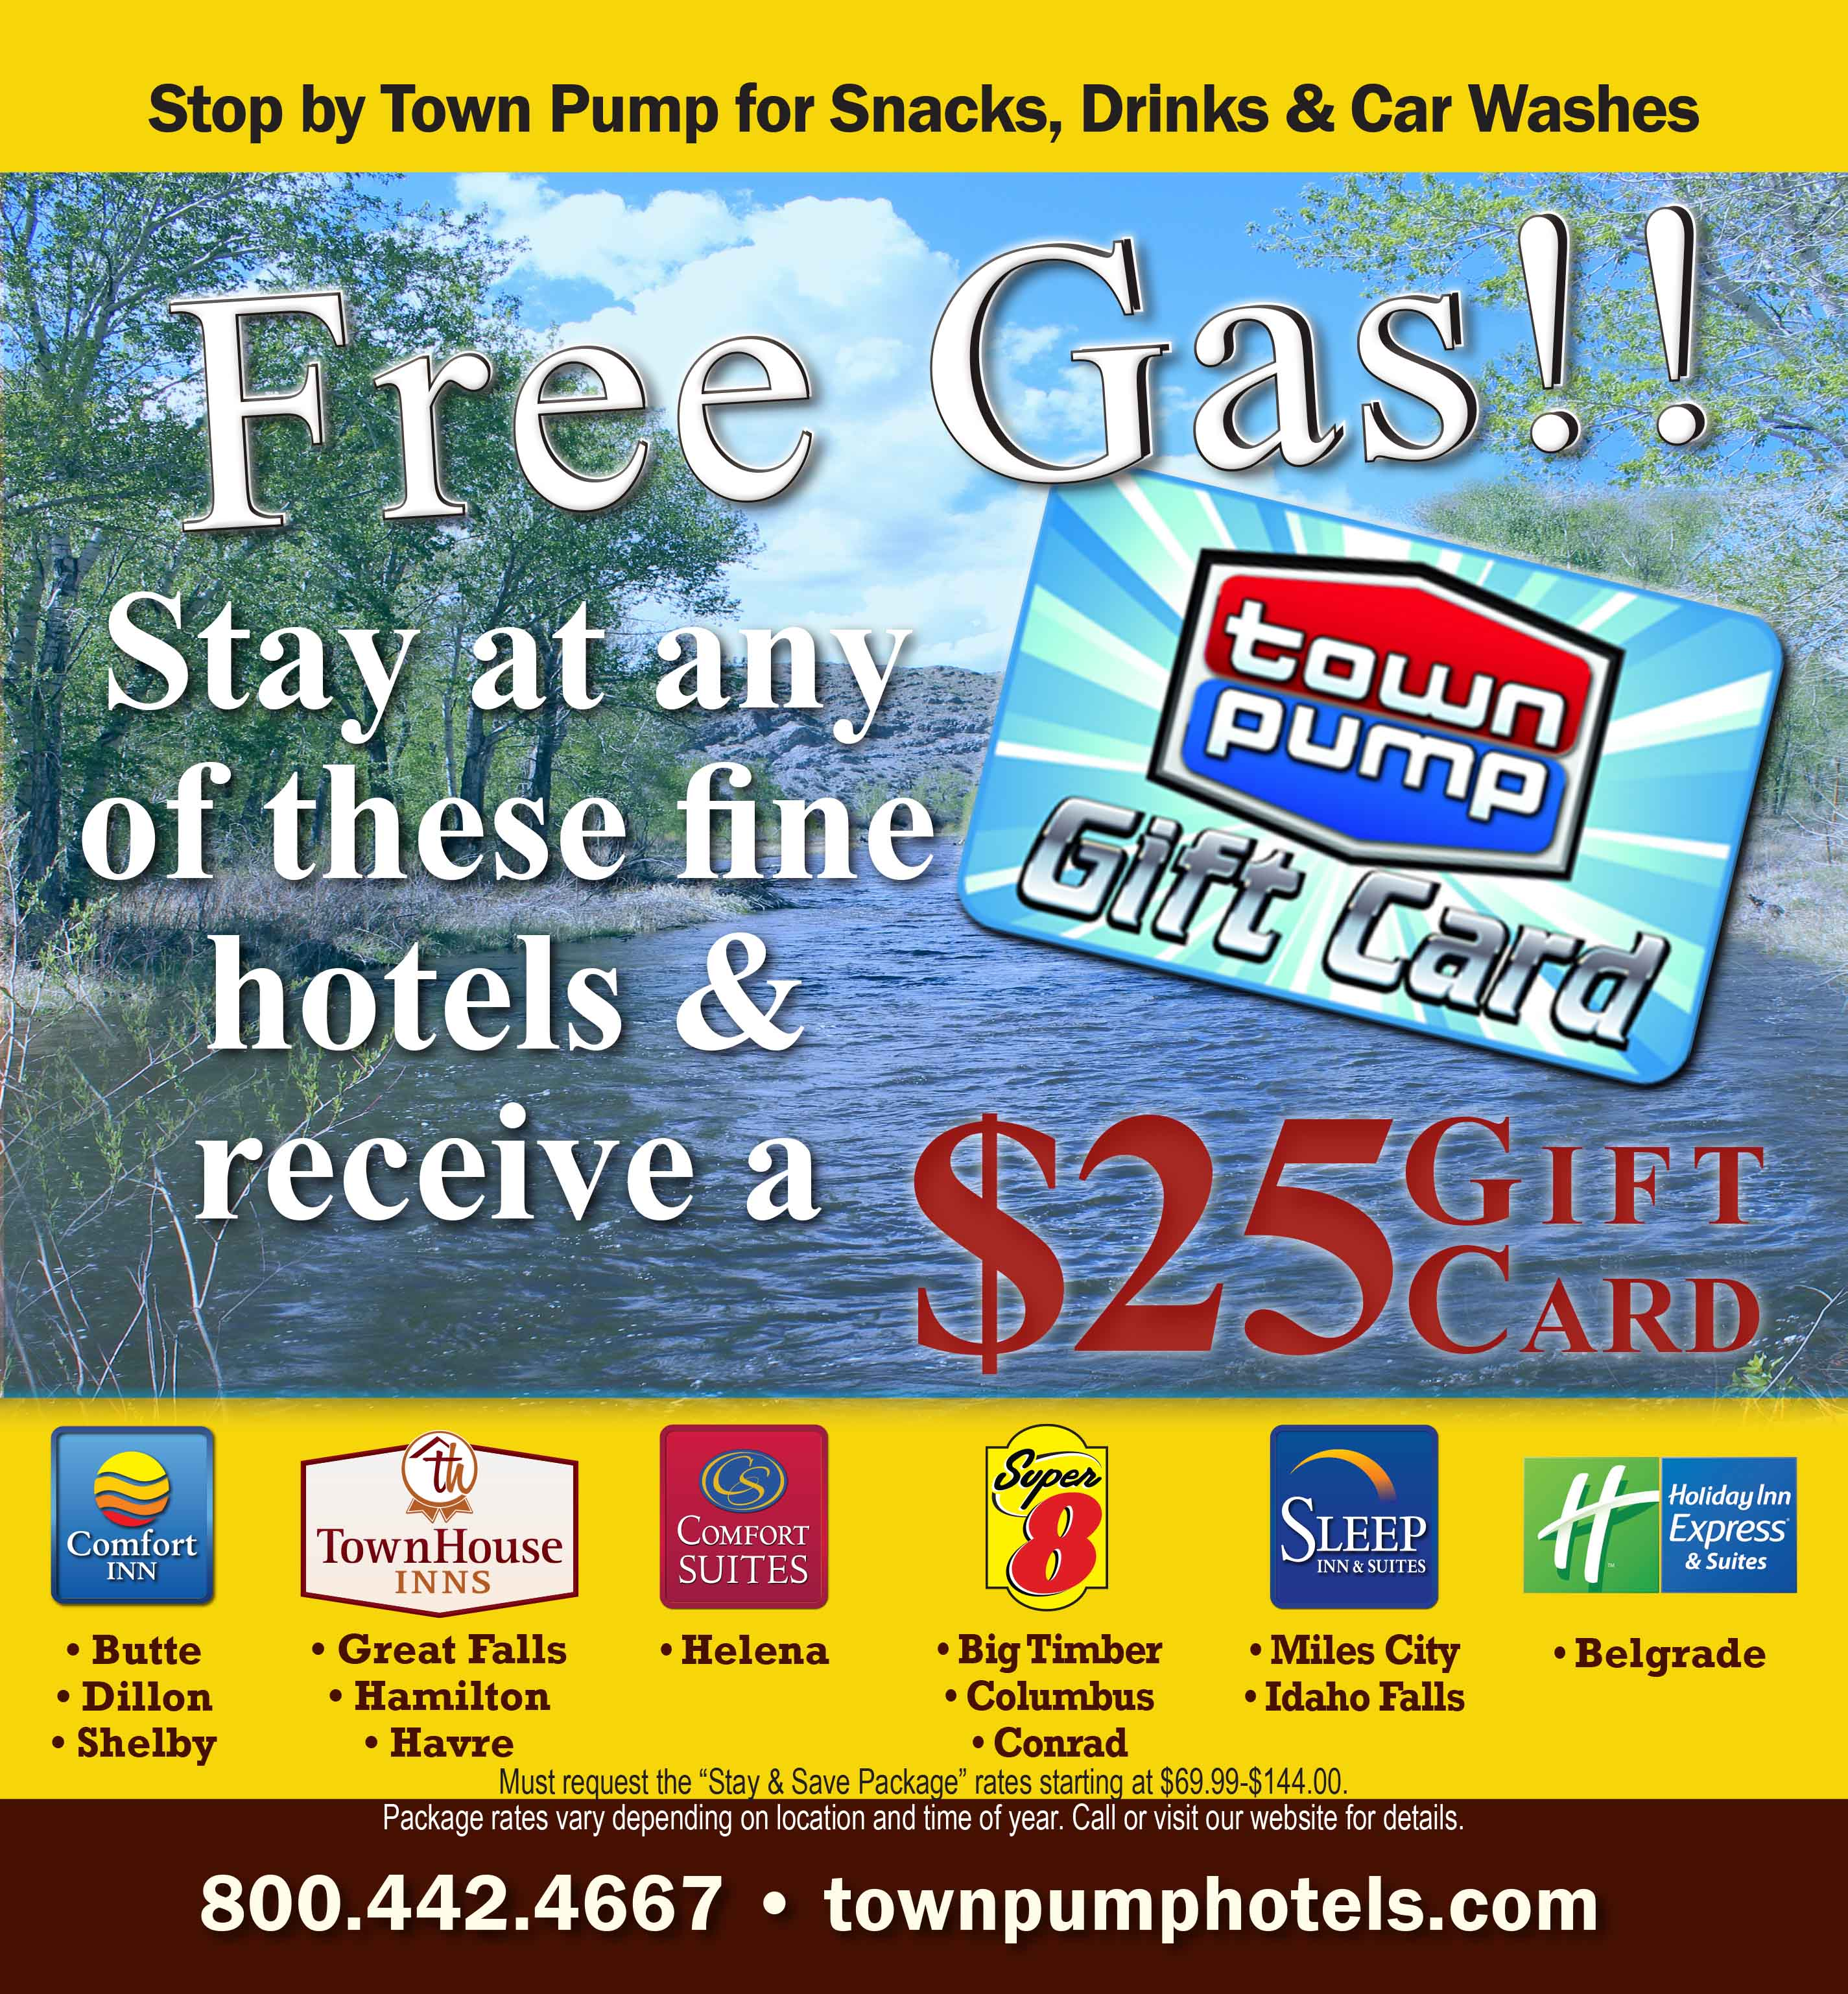 Get a Town Pump Gift Card when you book a Stay & Save